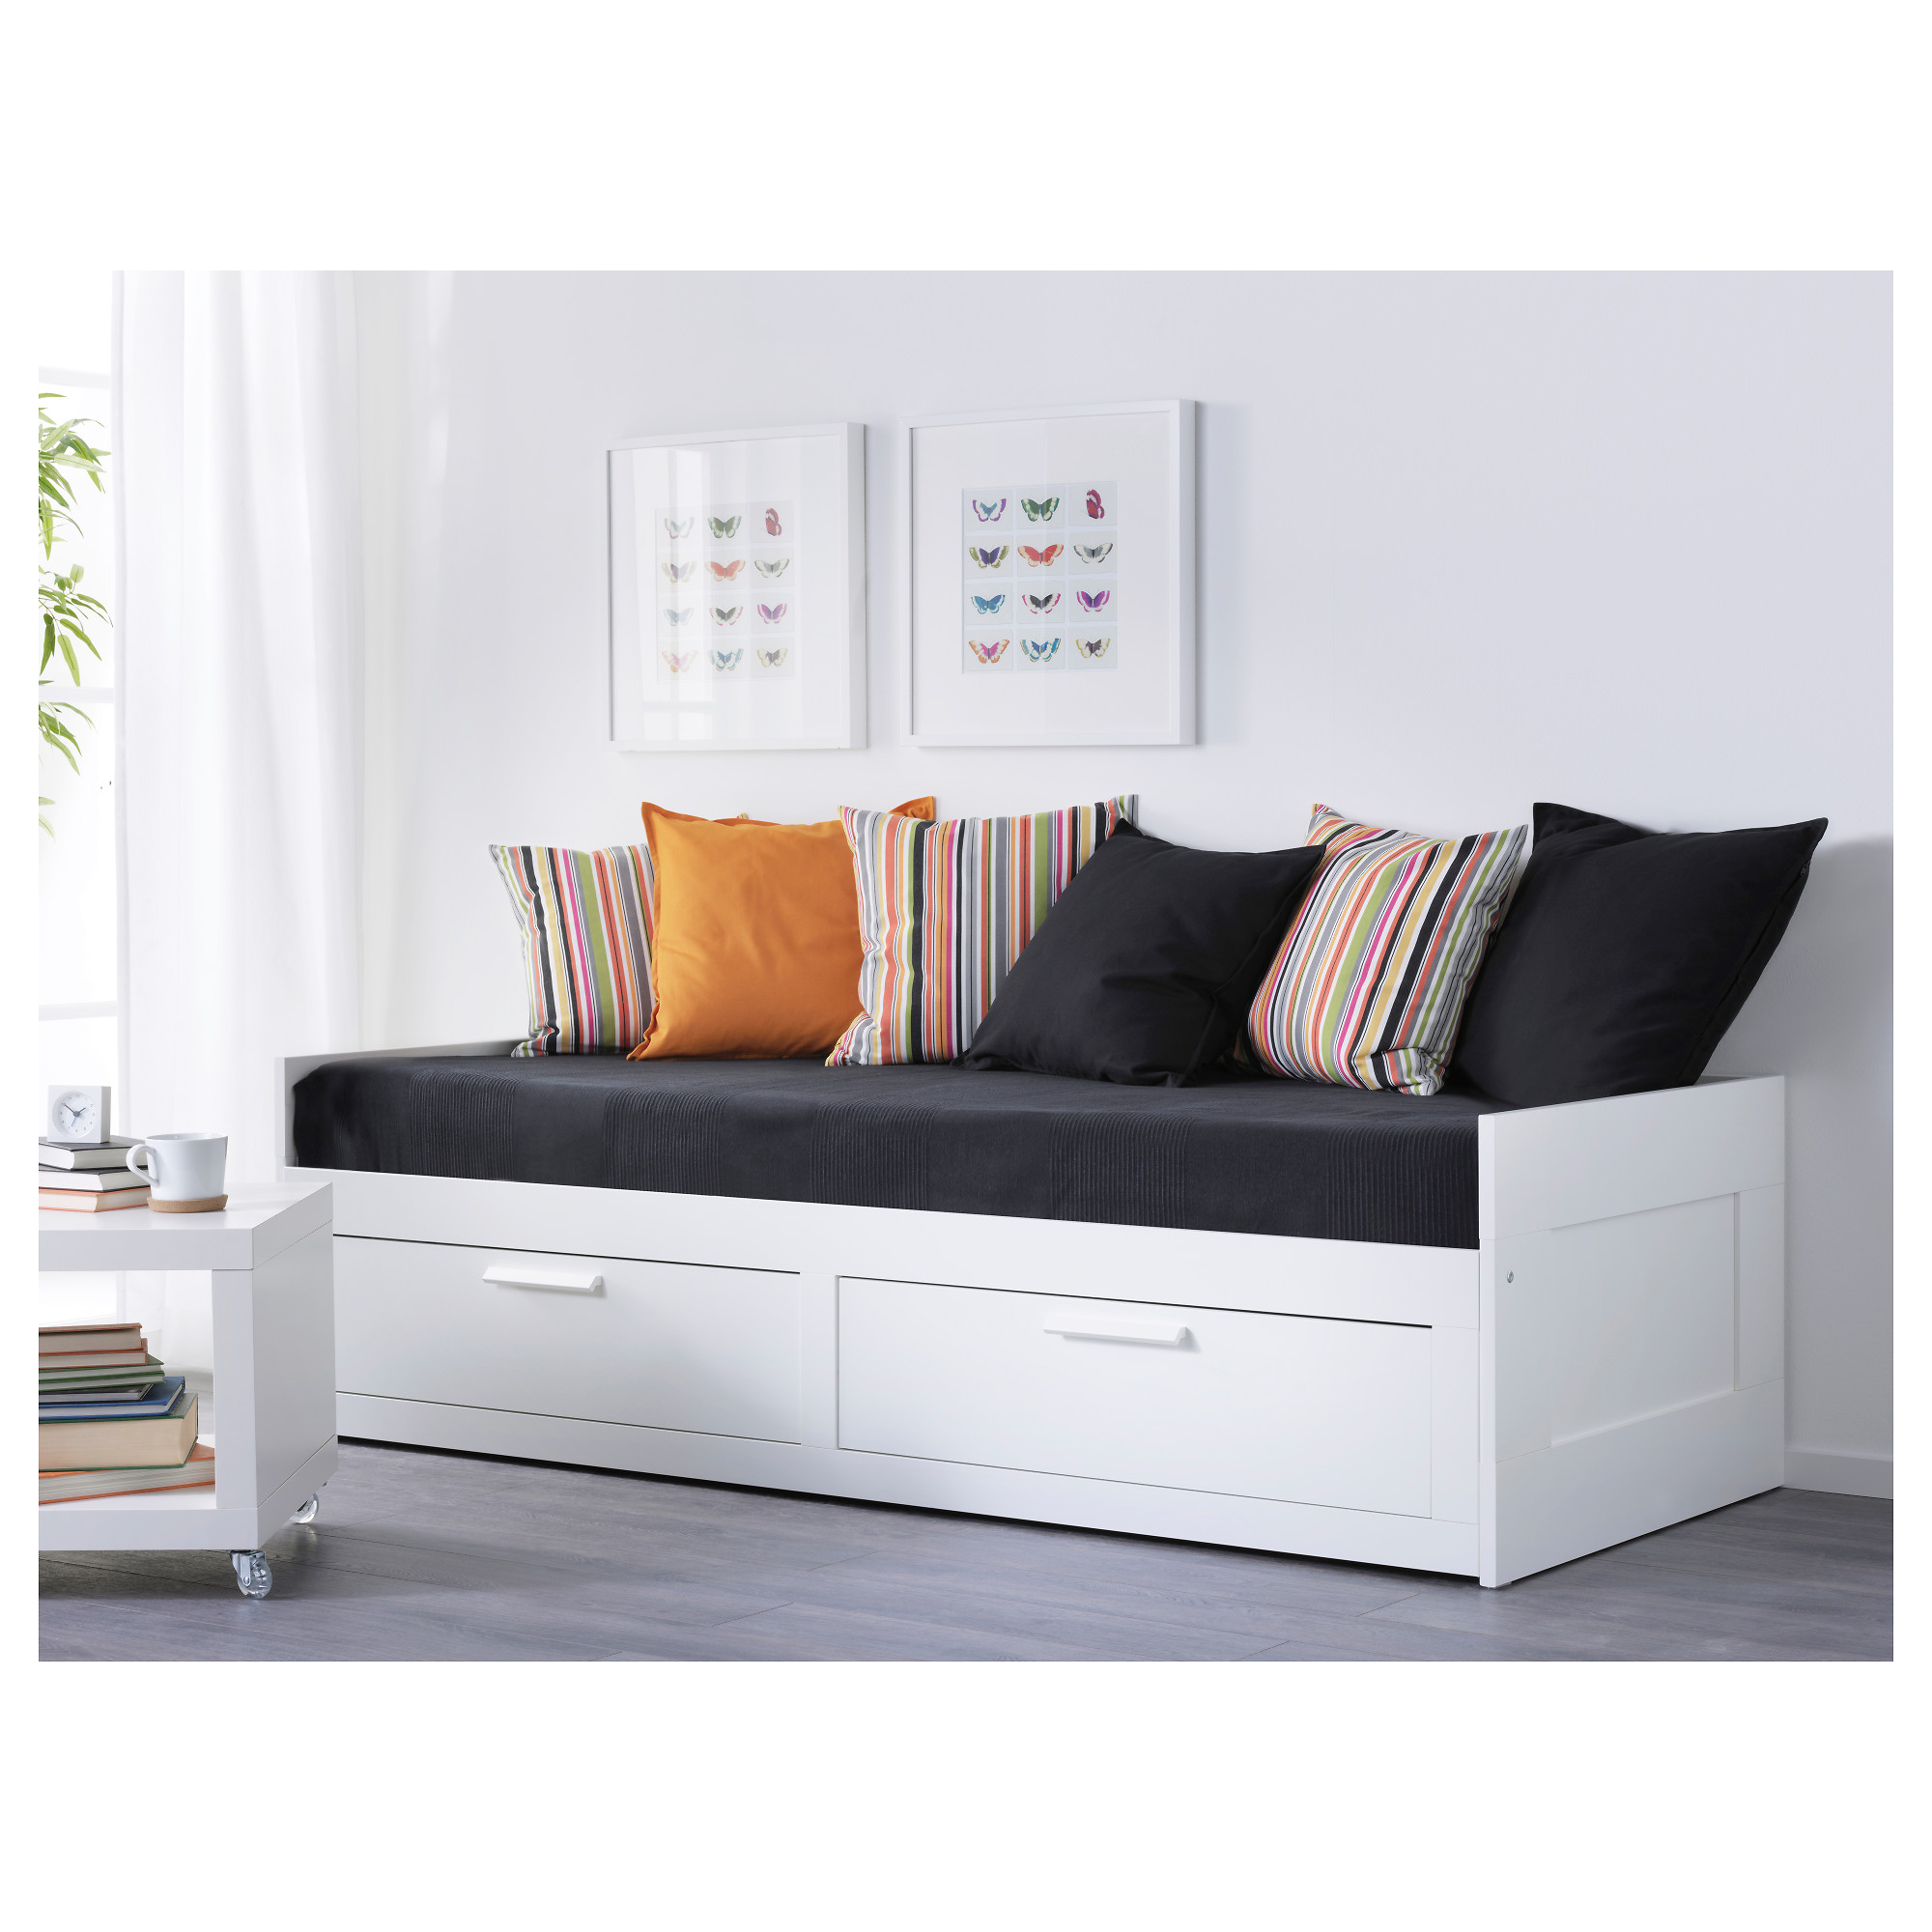 - BRIMNES - Day-bed Frame With 2 Drawers, White IKEA Hong Kong